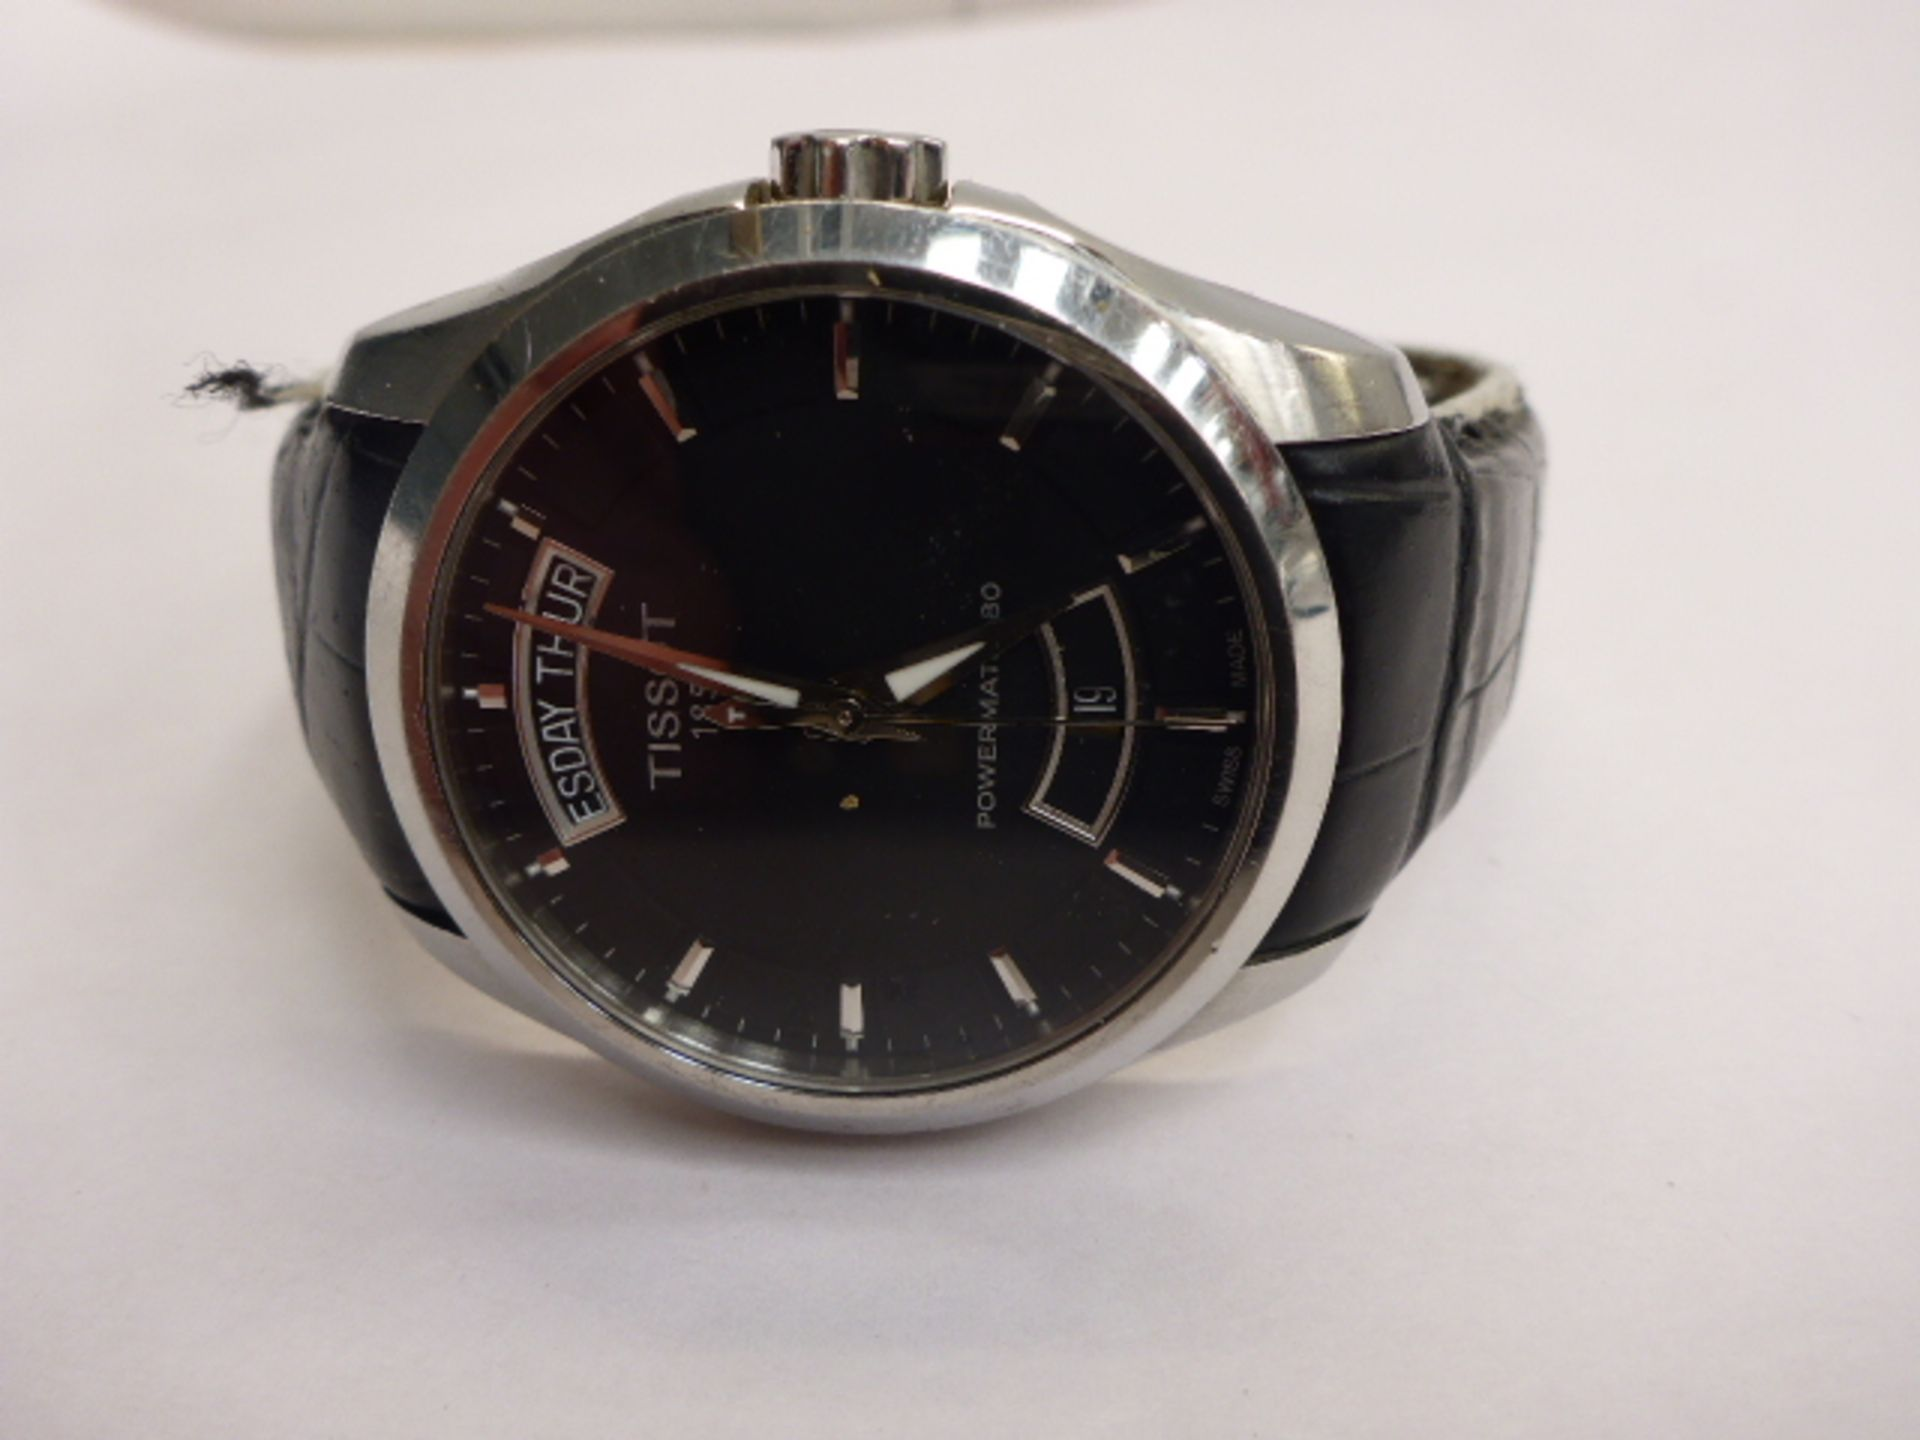 Lot 2026 - Tissot 1883 Powermatic 80 gents wristwatch